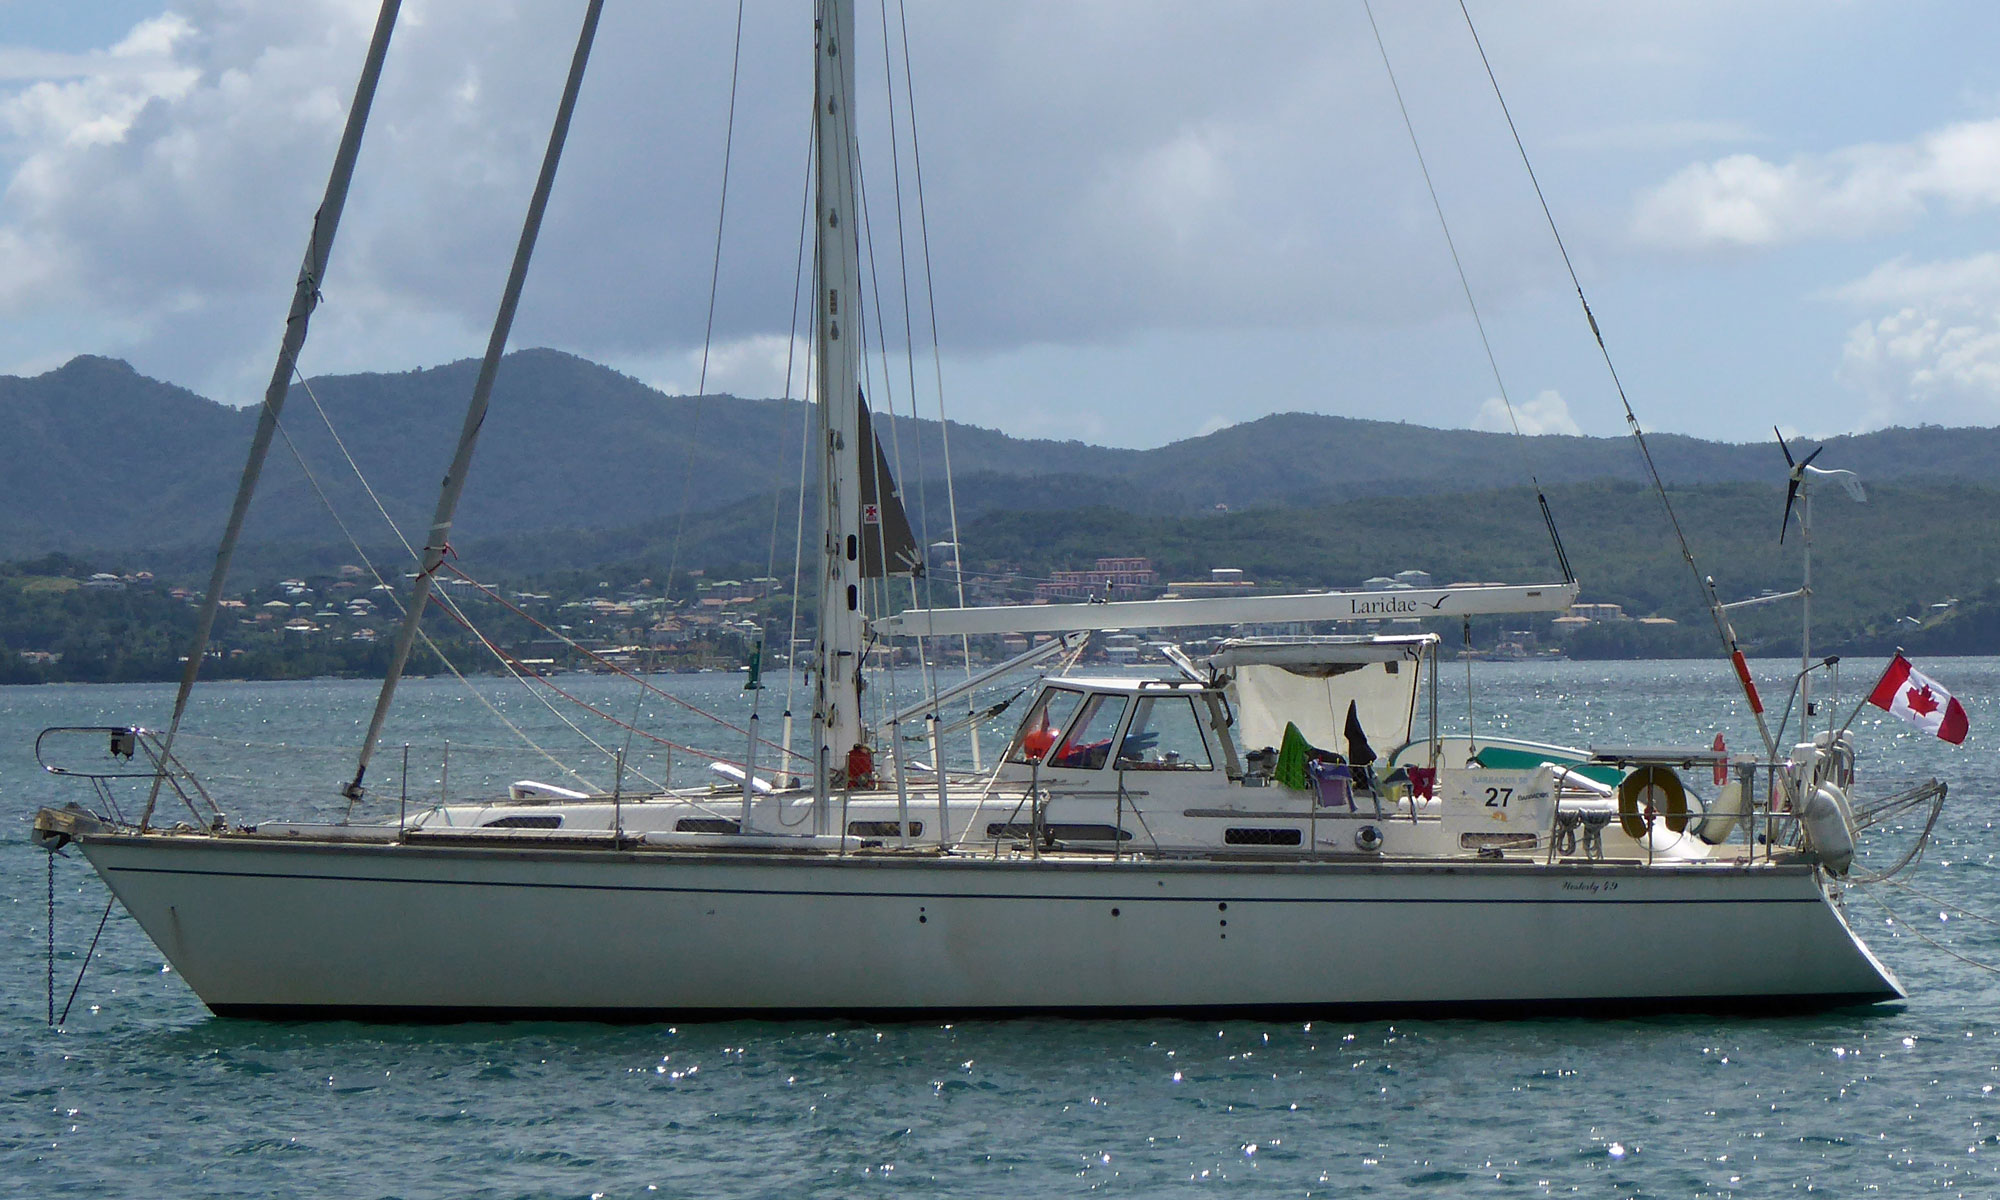 Popular Cruising Yachts From 45 To 50 Feet 137m To 152m Length Overall